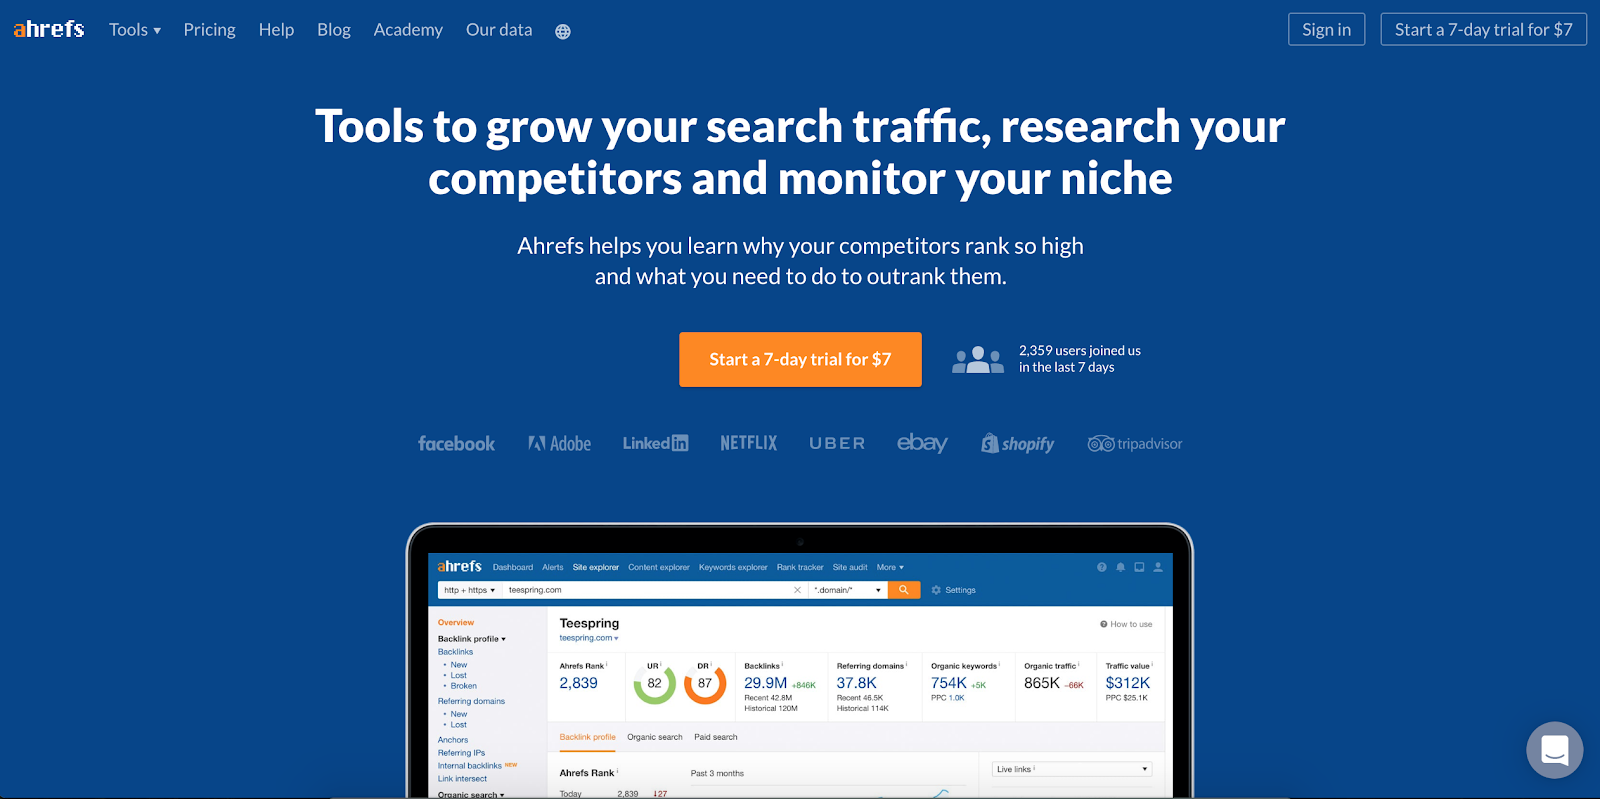 Top Marketing Tool Example #13 - Ahrefs | 16 Powerful Marketing Tools You Haven't Considered (But Probably Should)